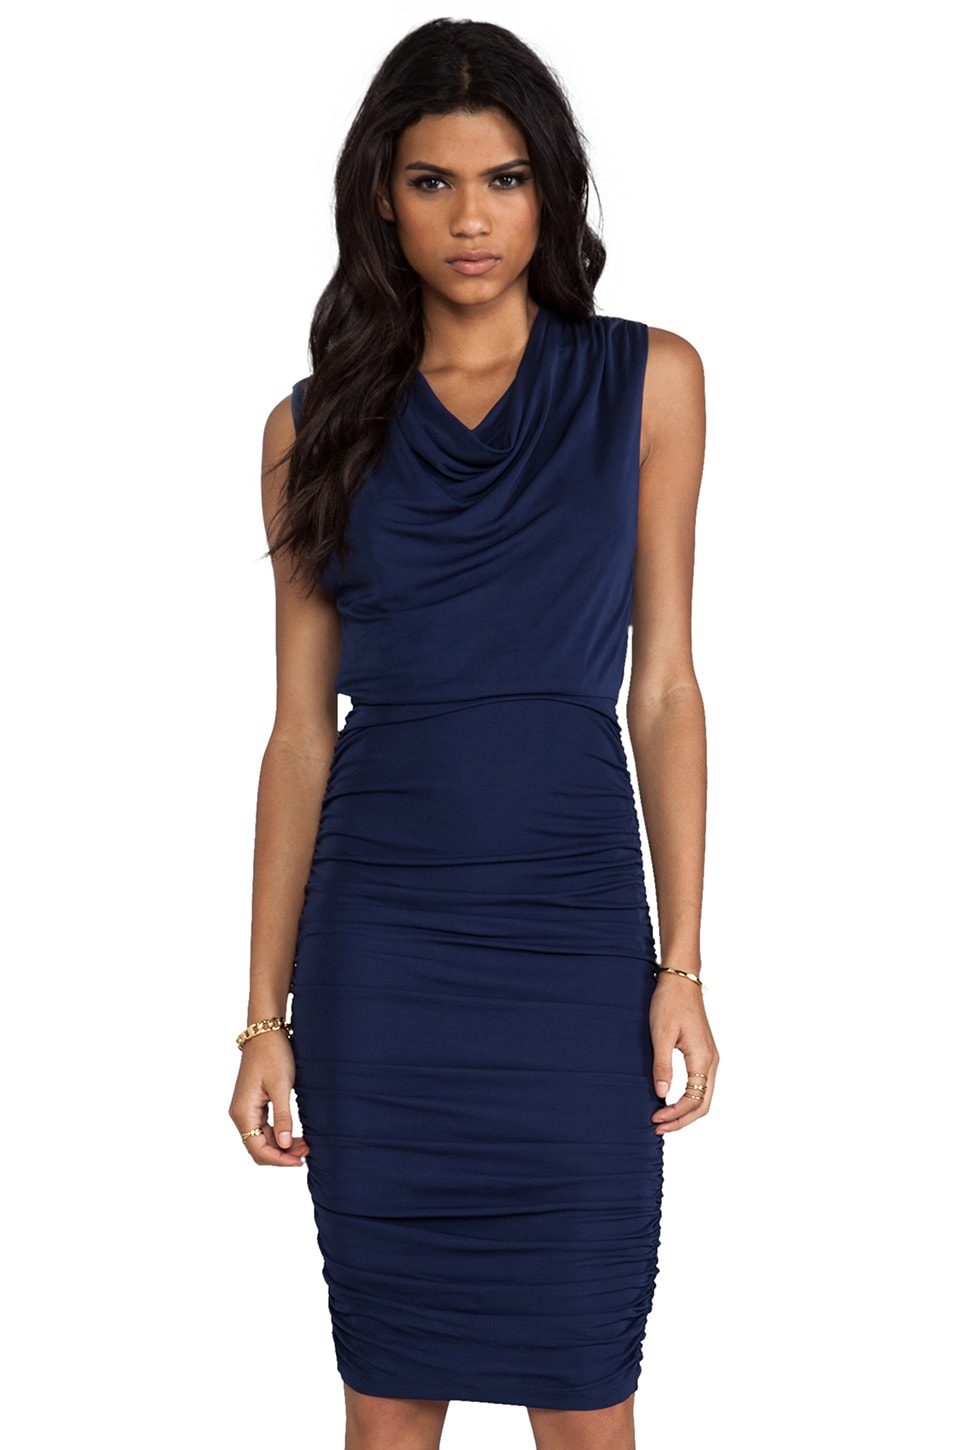 Alice + Olivia Brentan Blouson Ruched Skirt Dress in Navy